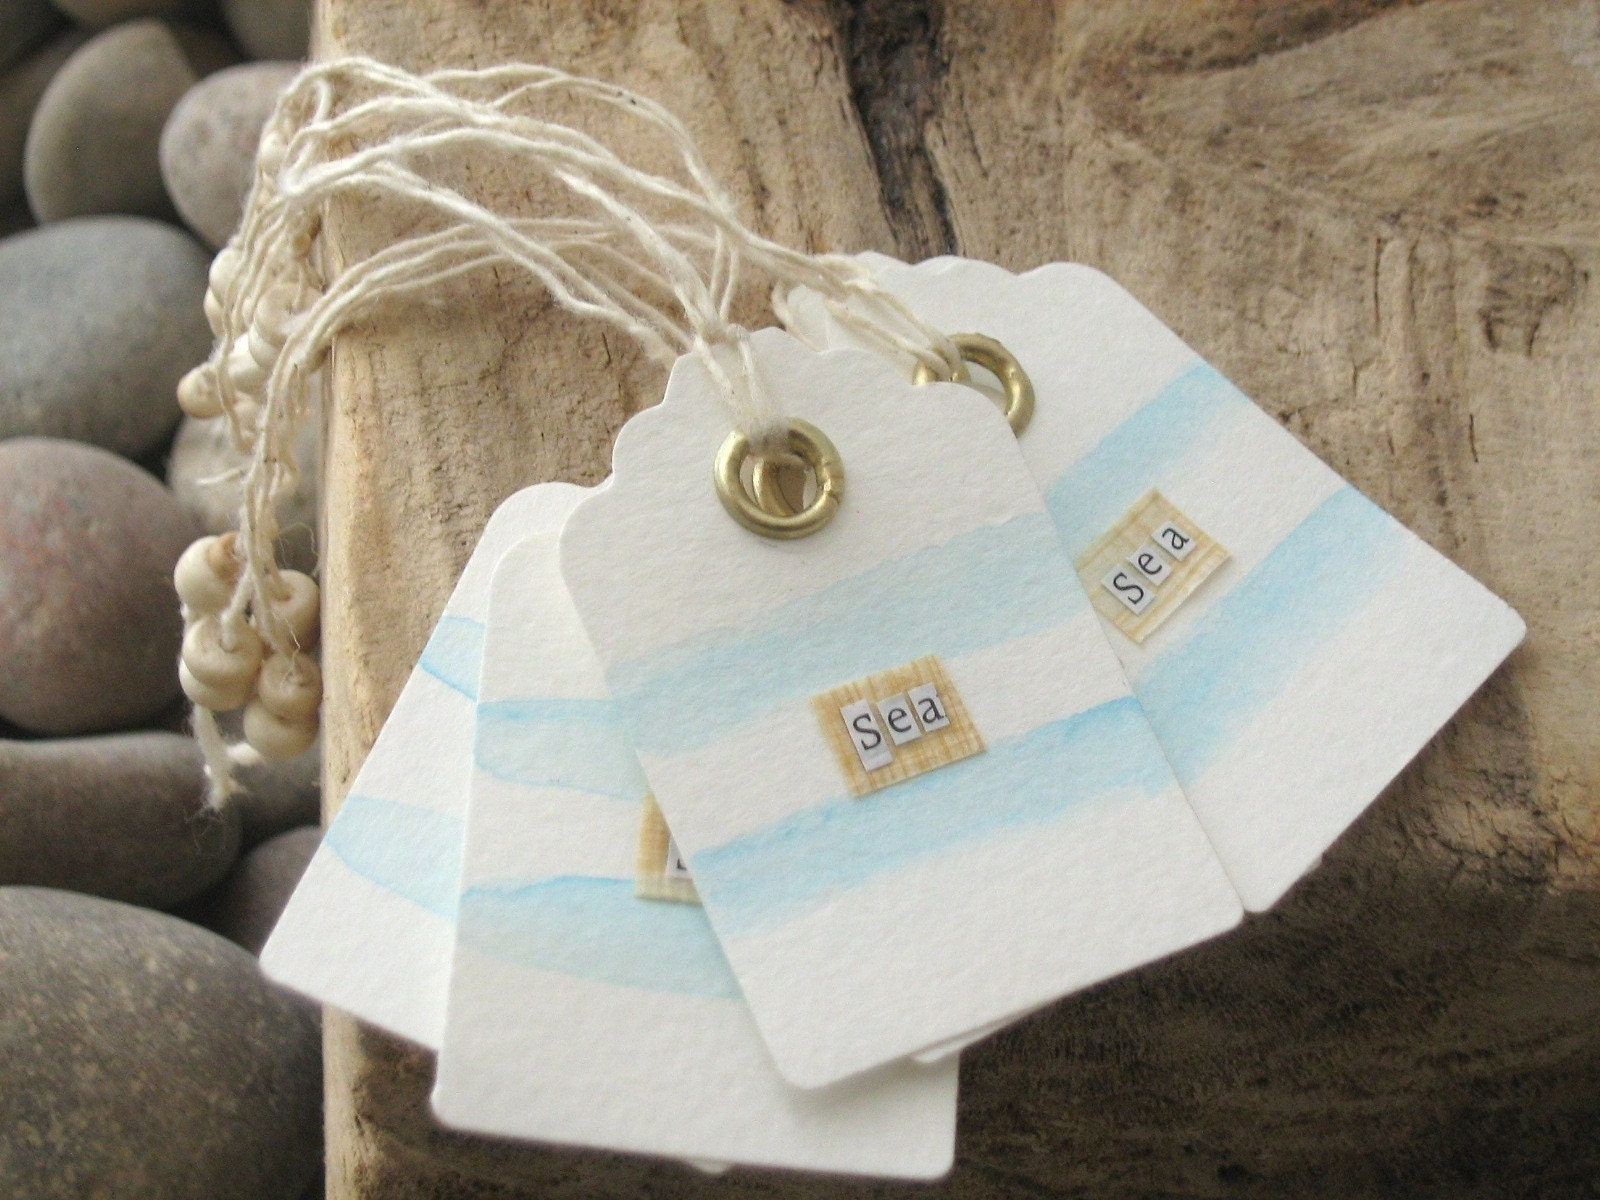 Handmade  Gift Tags - The Seven Seas